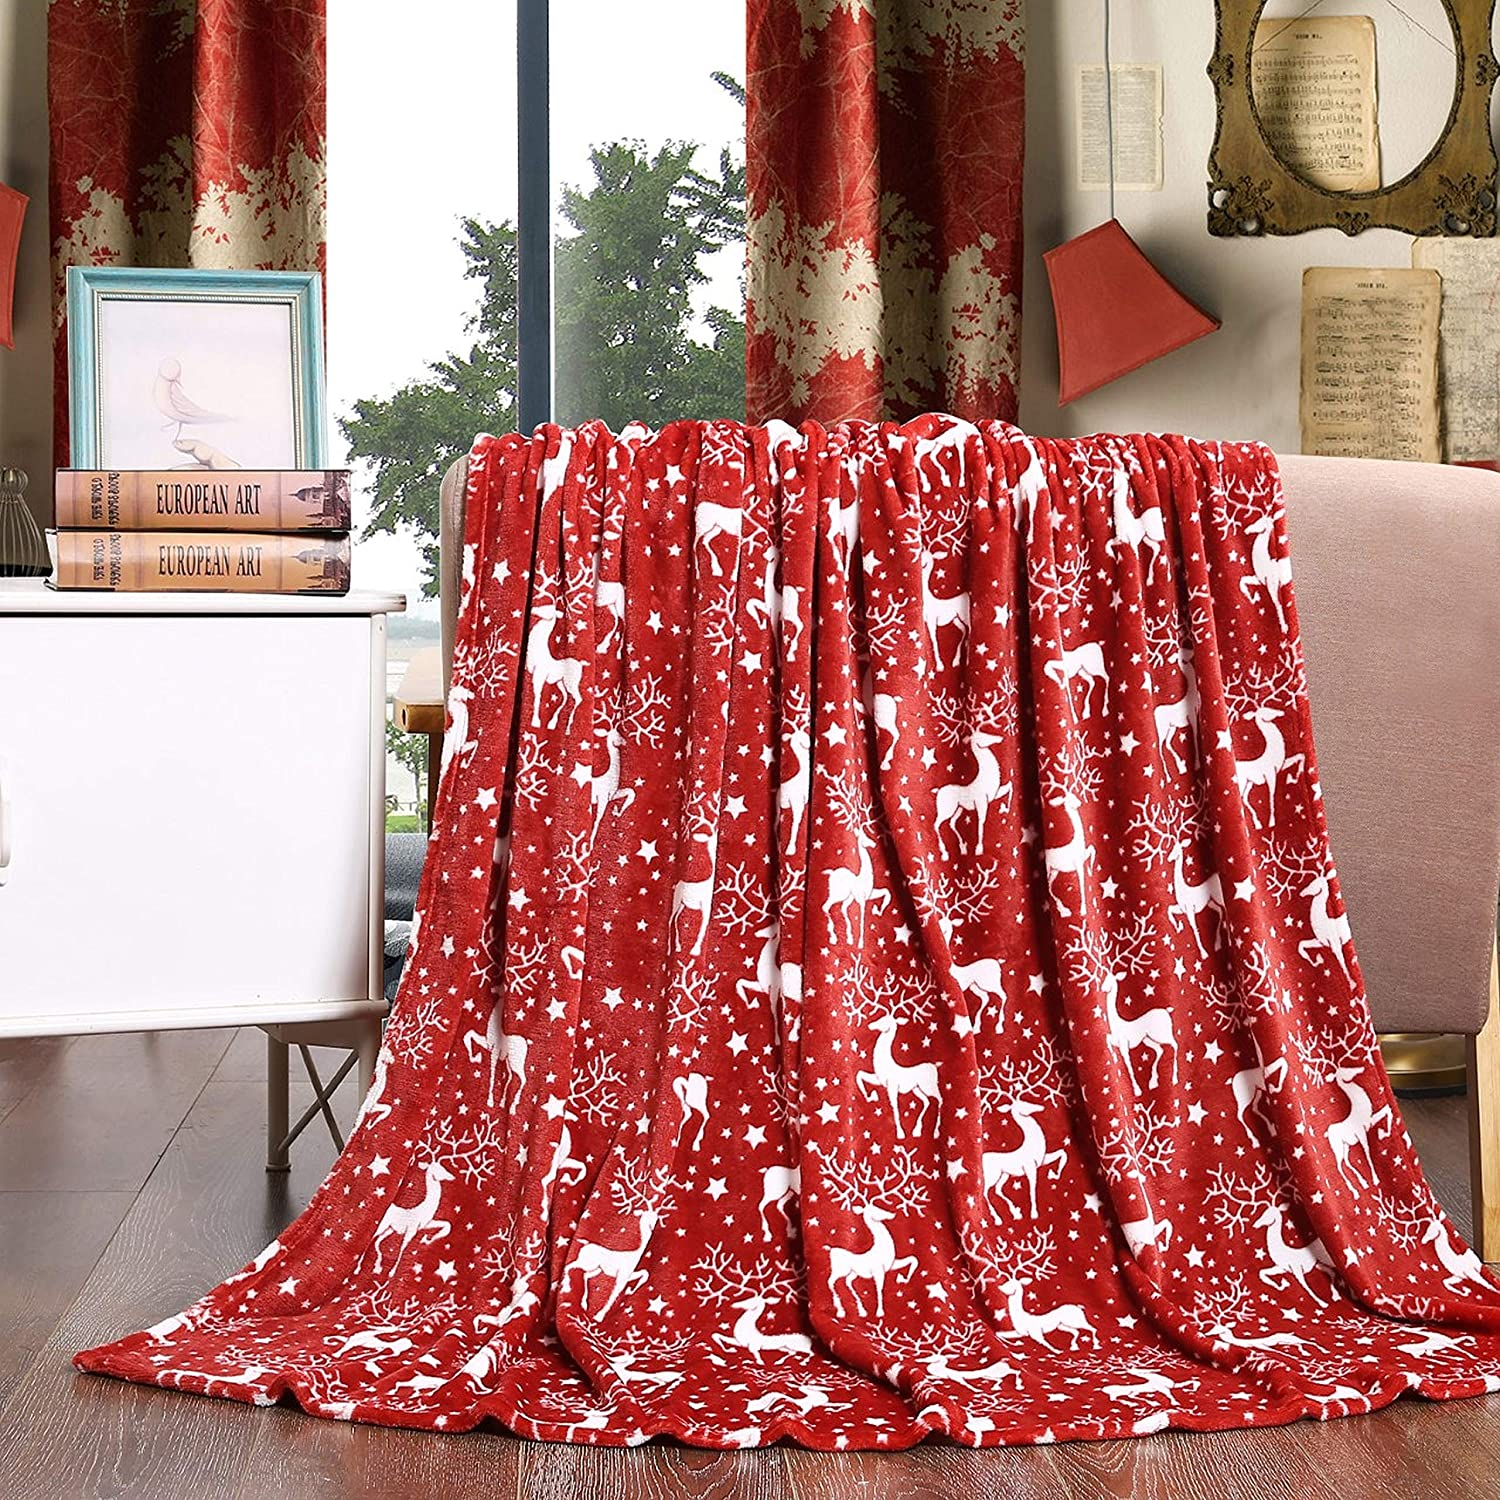 Elegant Comfort Velvet Touch 67% OFF of fixed price Ultra Super-cheap Christmas Plush Holiday Print